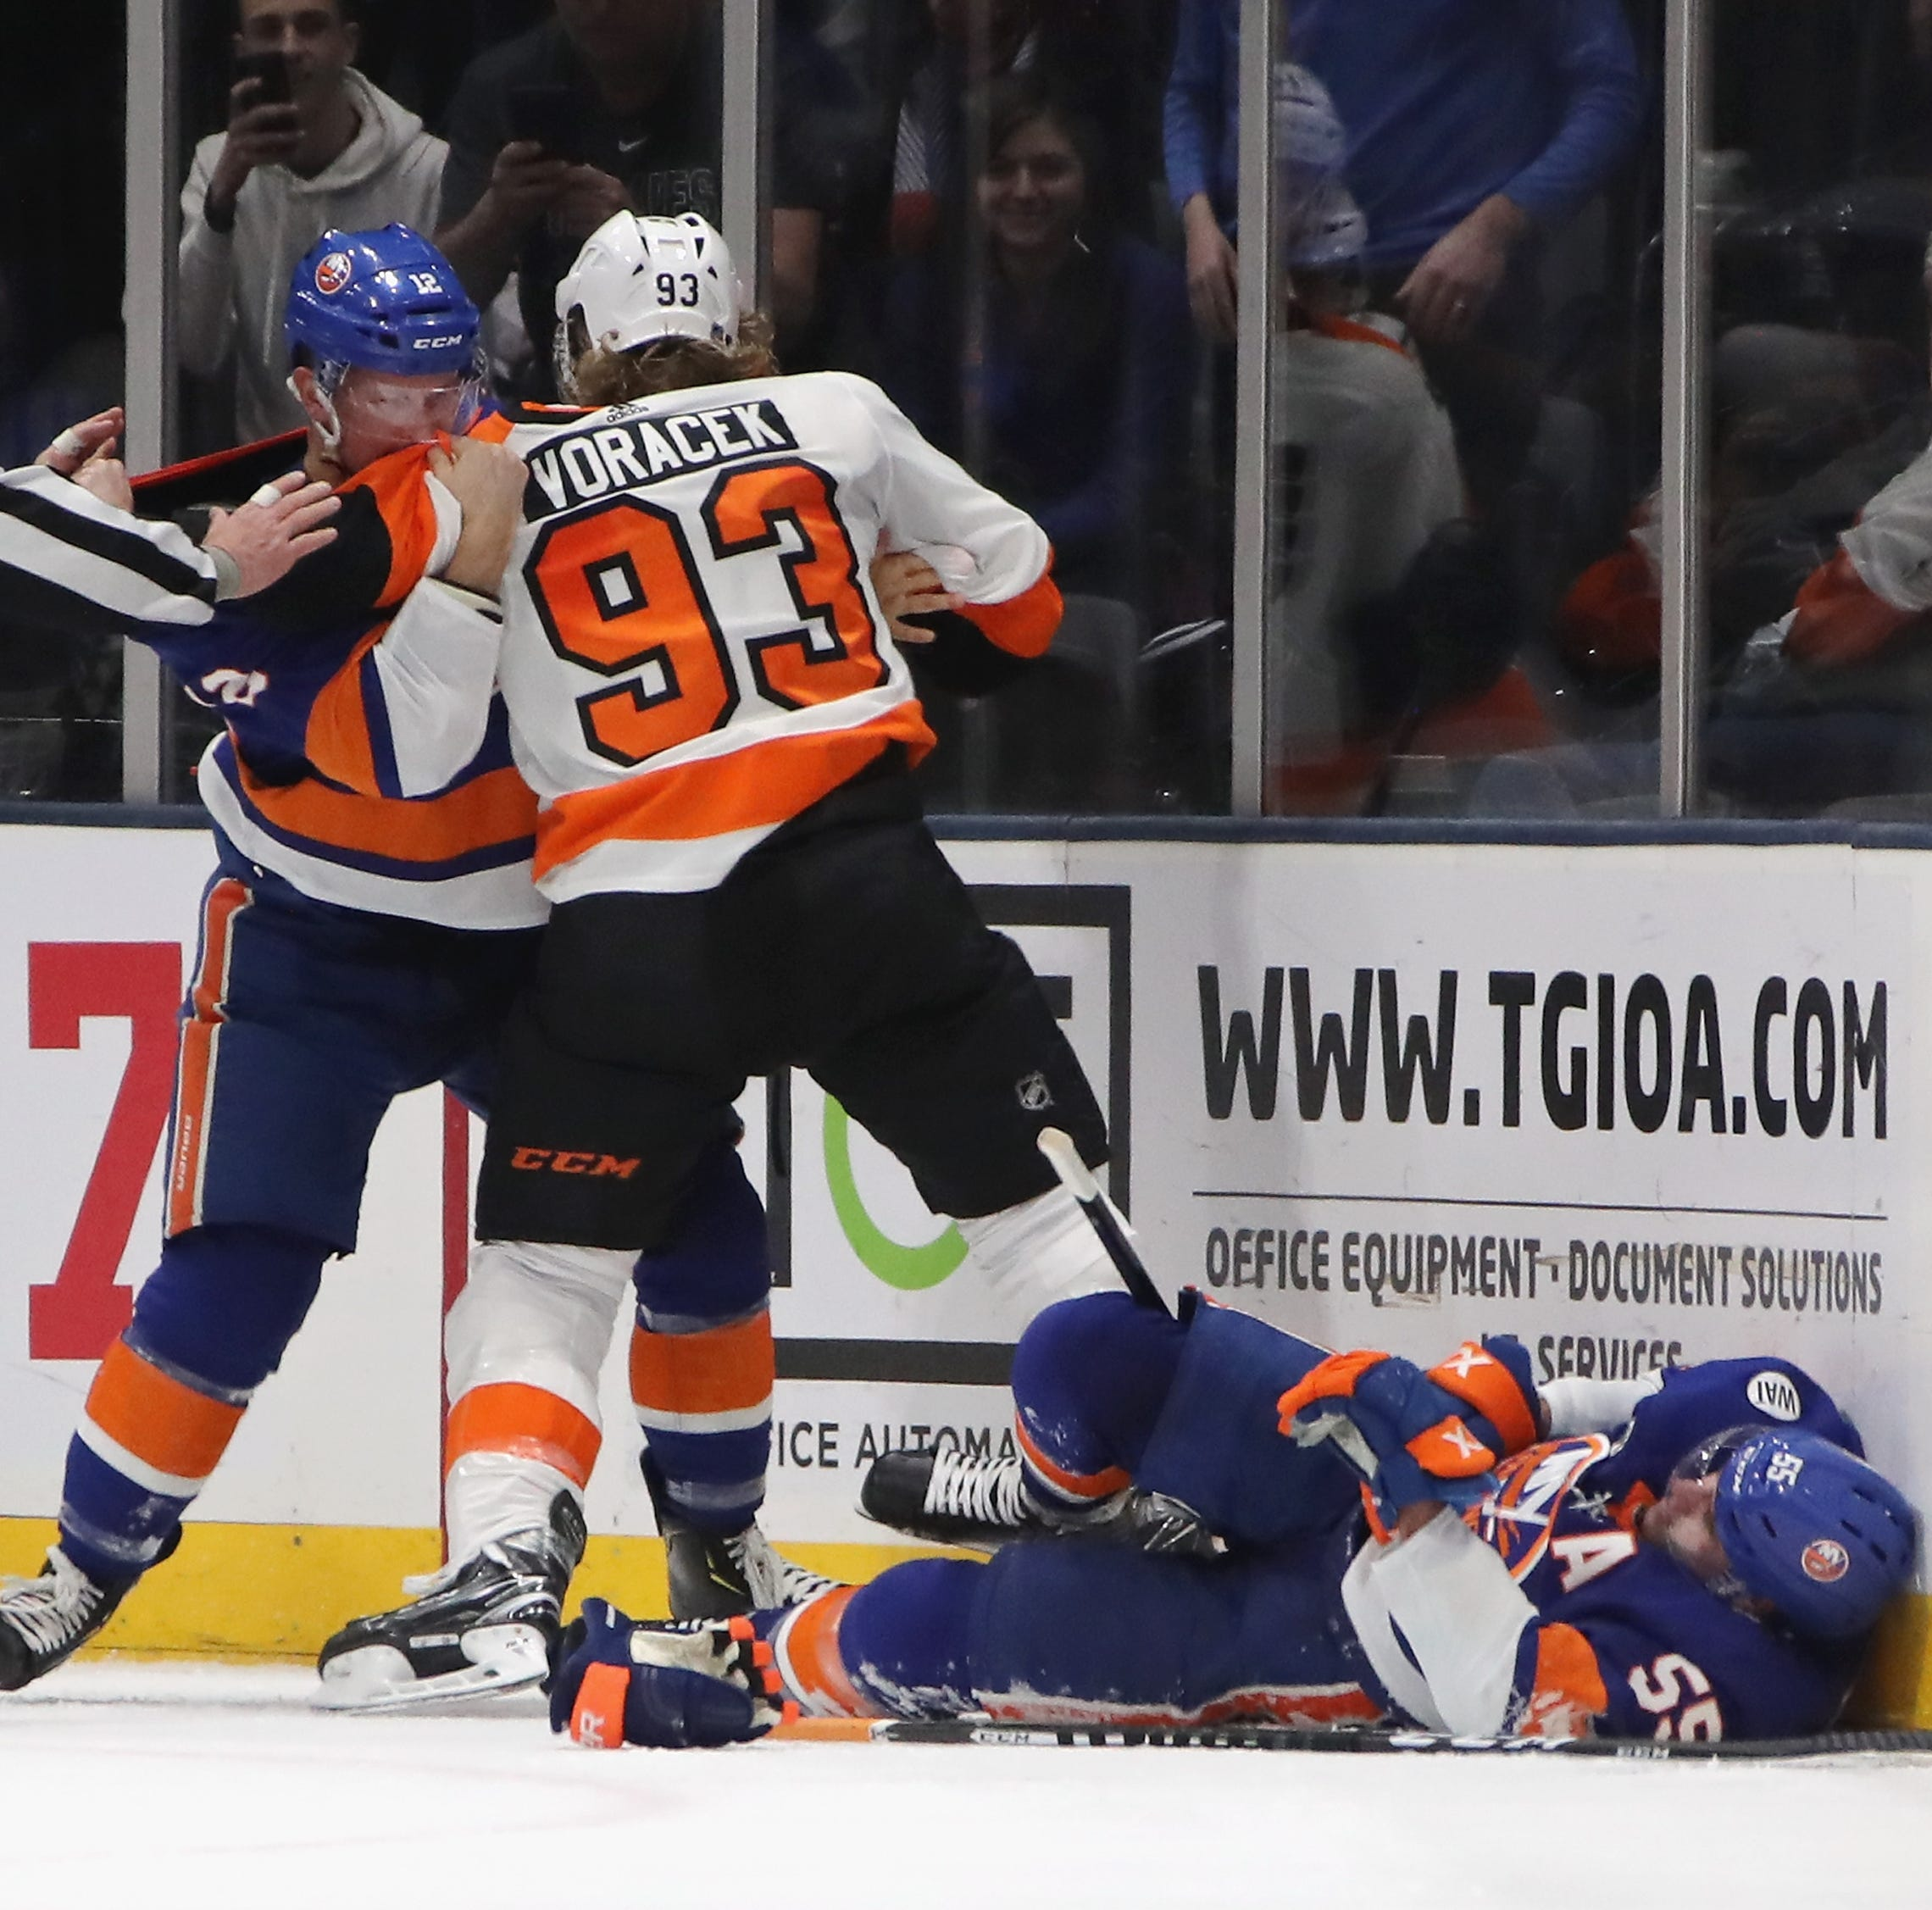 Jake Voracek suspended two games for interfering with Johnny Boychuk